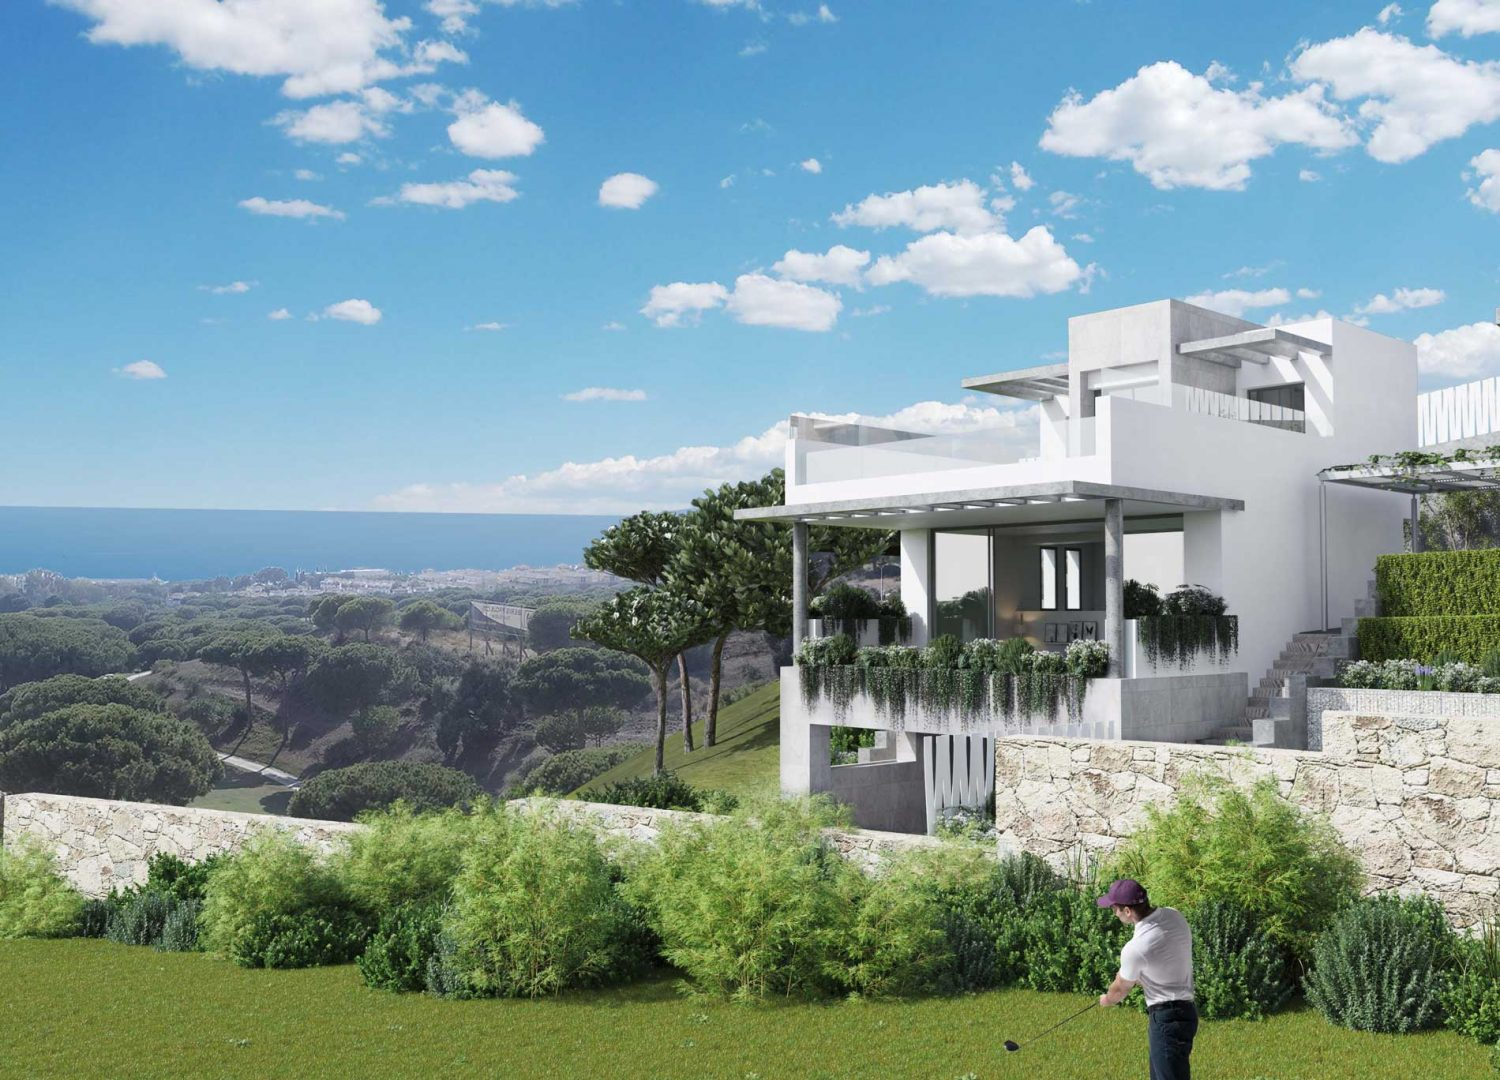 The Cape Exclusive residential complex made up of 23 townhouses and 2 independent villas in Cabopino